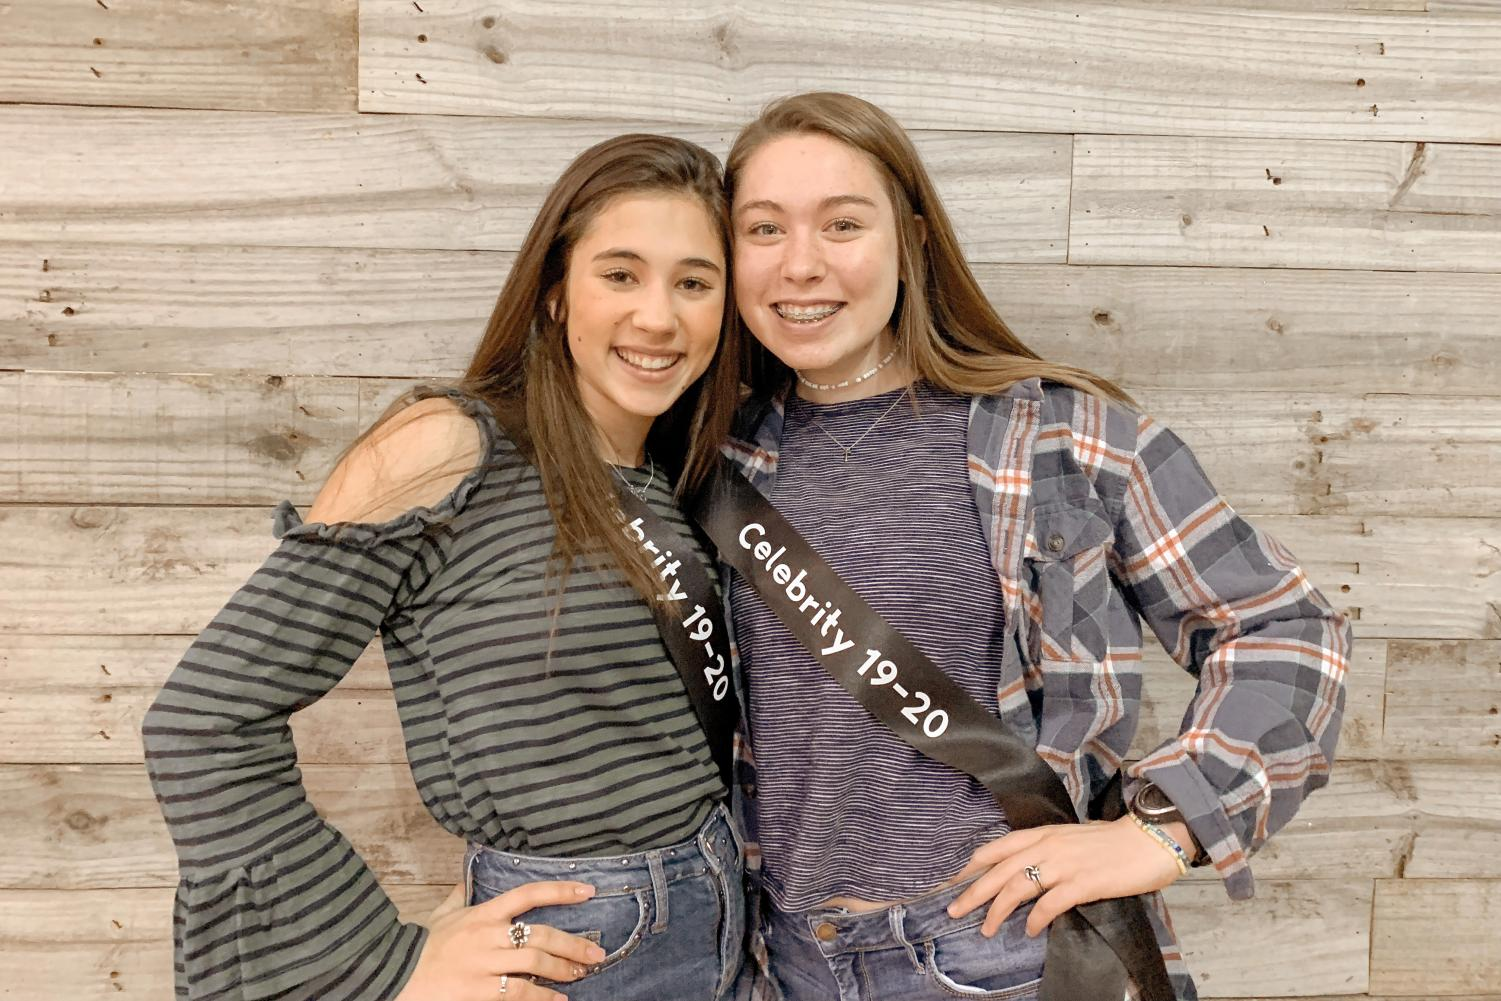 Freshman Carlton Marcom poses with fellow Rising Star Ava Caldwell. Marcom auditioned on Nov. 29 after attending multiple clinics leading up to audition day.